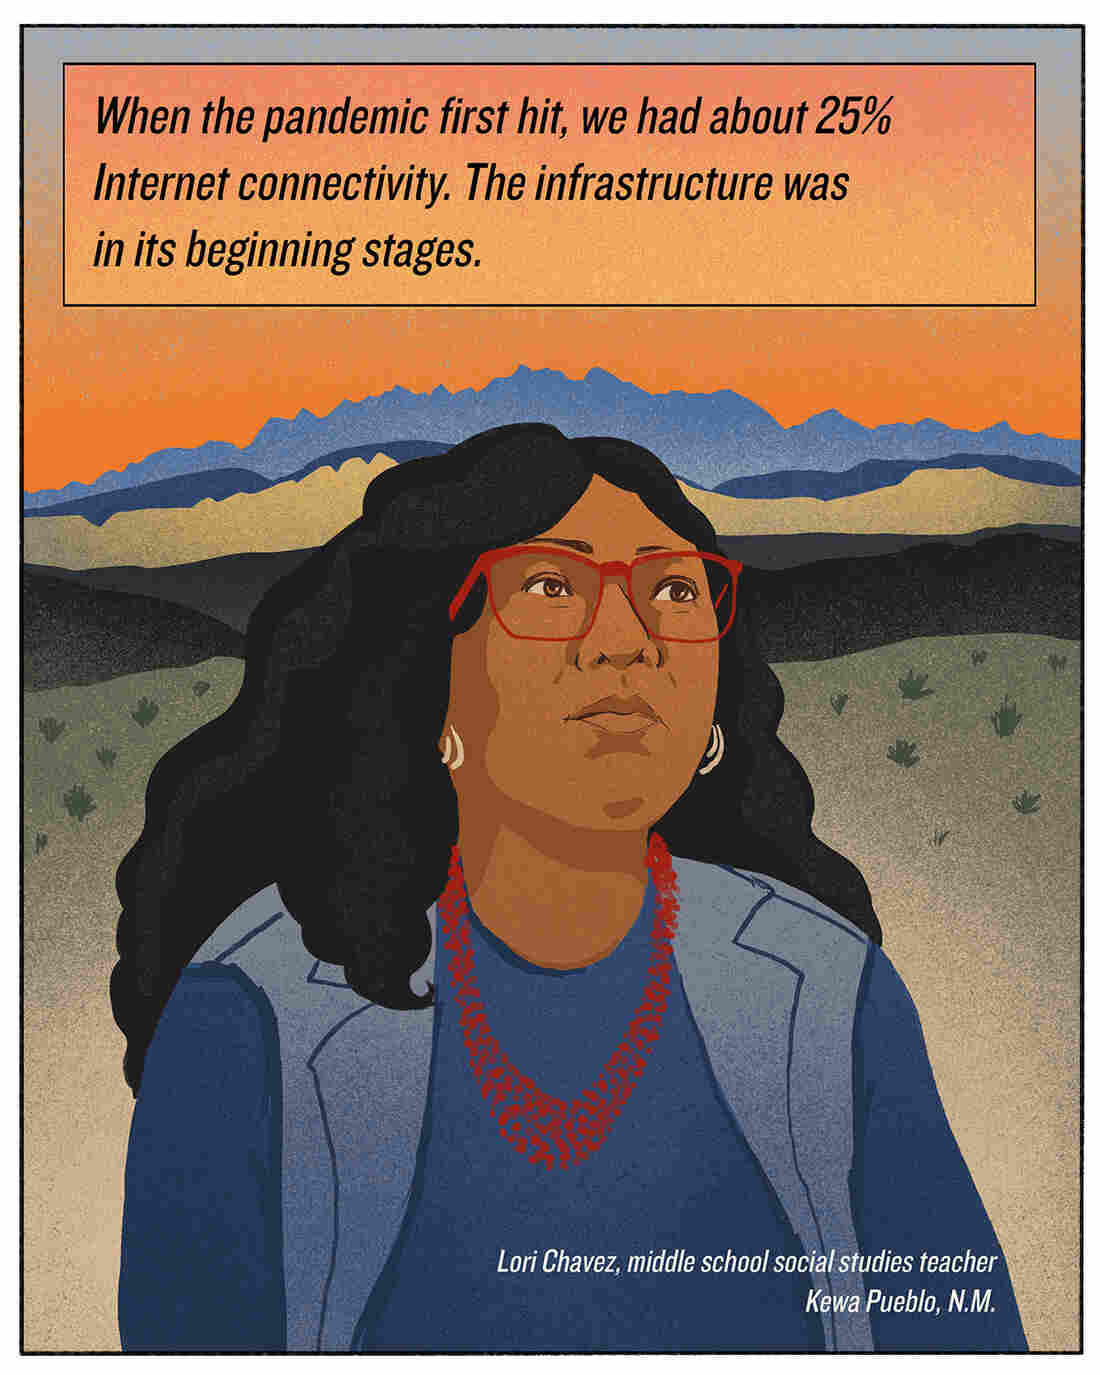 """When the pandemic first hit, we had about 25% Internet connectivity. The infrastructure was in its beginning stages."" Lori Chavez, middle school social studies teacher, Kewa Pueblo, N.M."